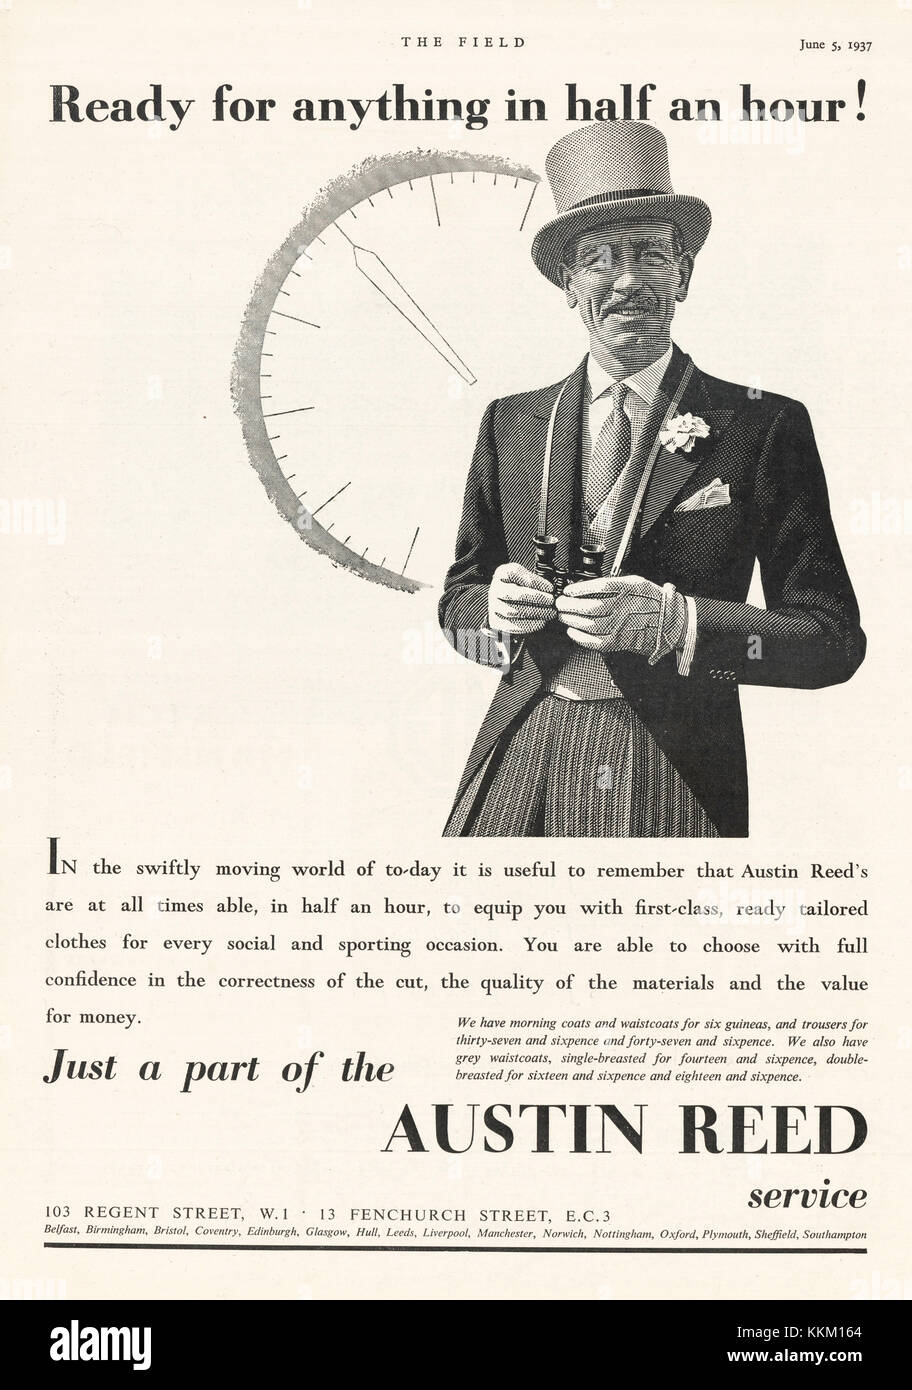 1937 Uk Magazine Austin Reed Advert Stock Photo Alamy